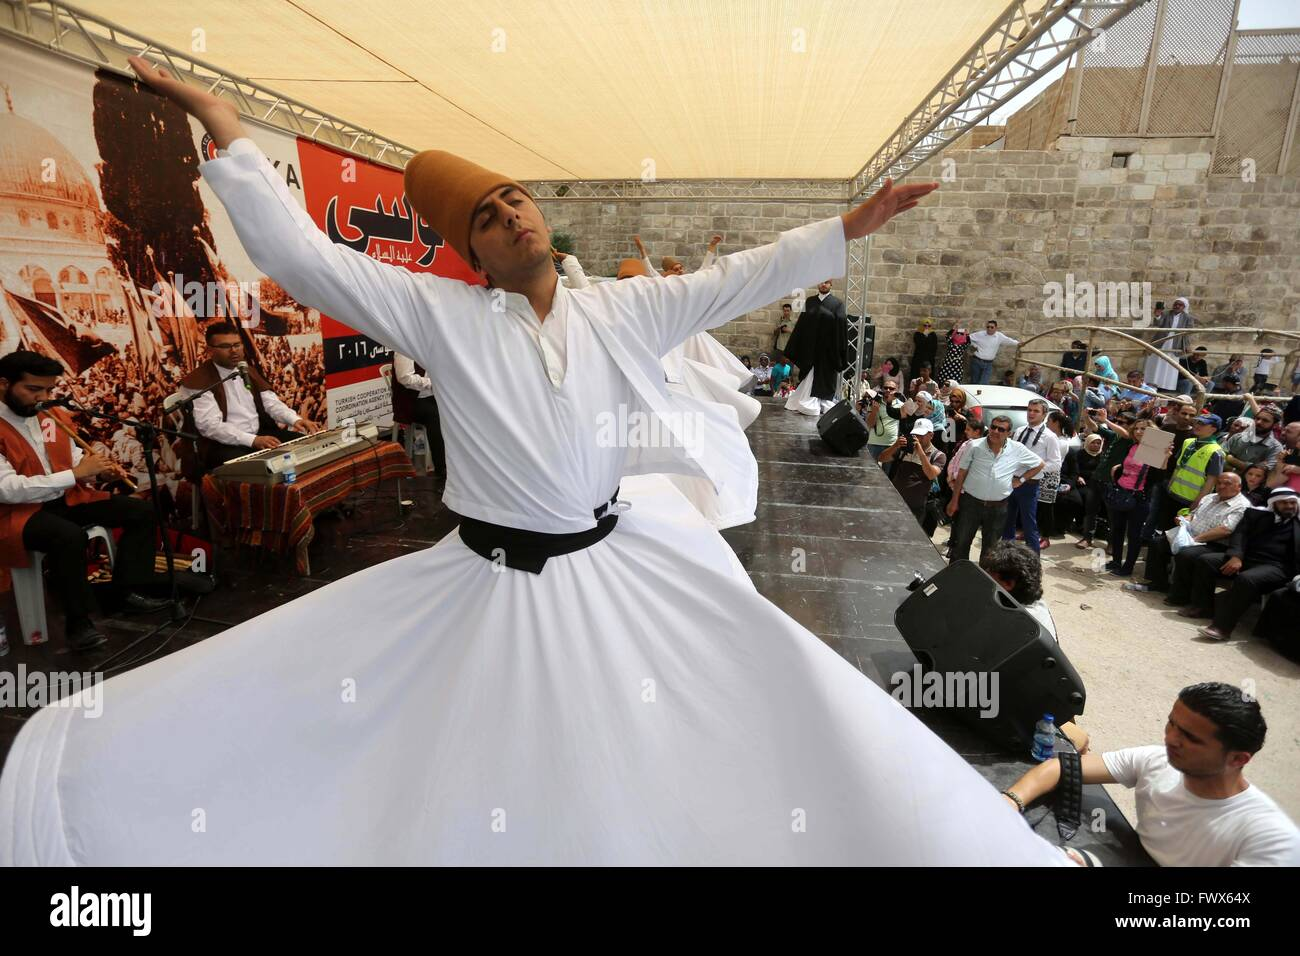 Jericho, West Bank, Palestinian Territory. 8th Apr, 2016. Whirling dervishes perform during a festival at the mosque - Stock Image